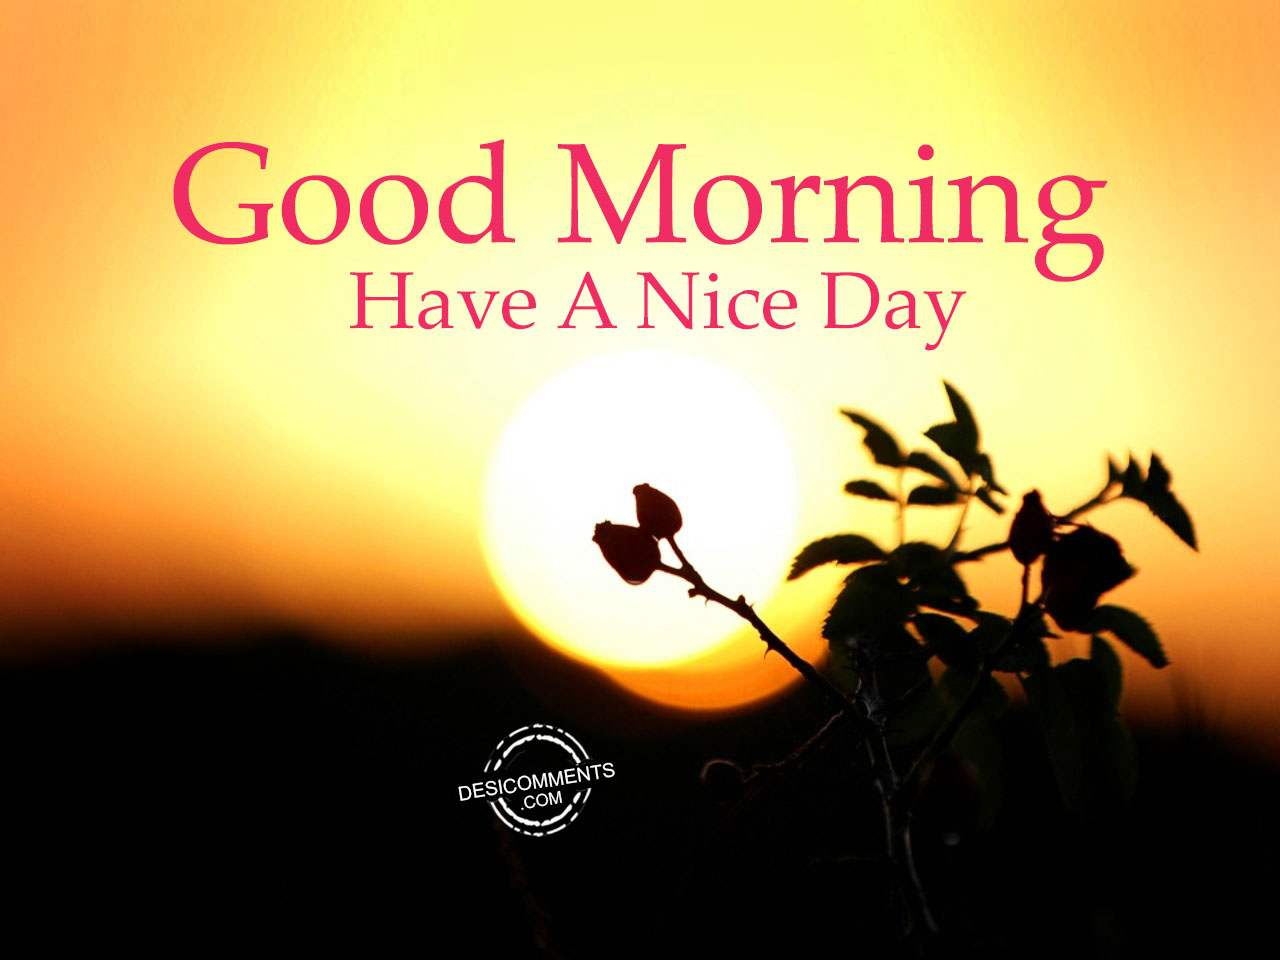 Have A Nice Day Good Morning Desicommentscom